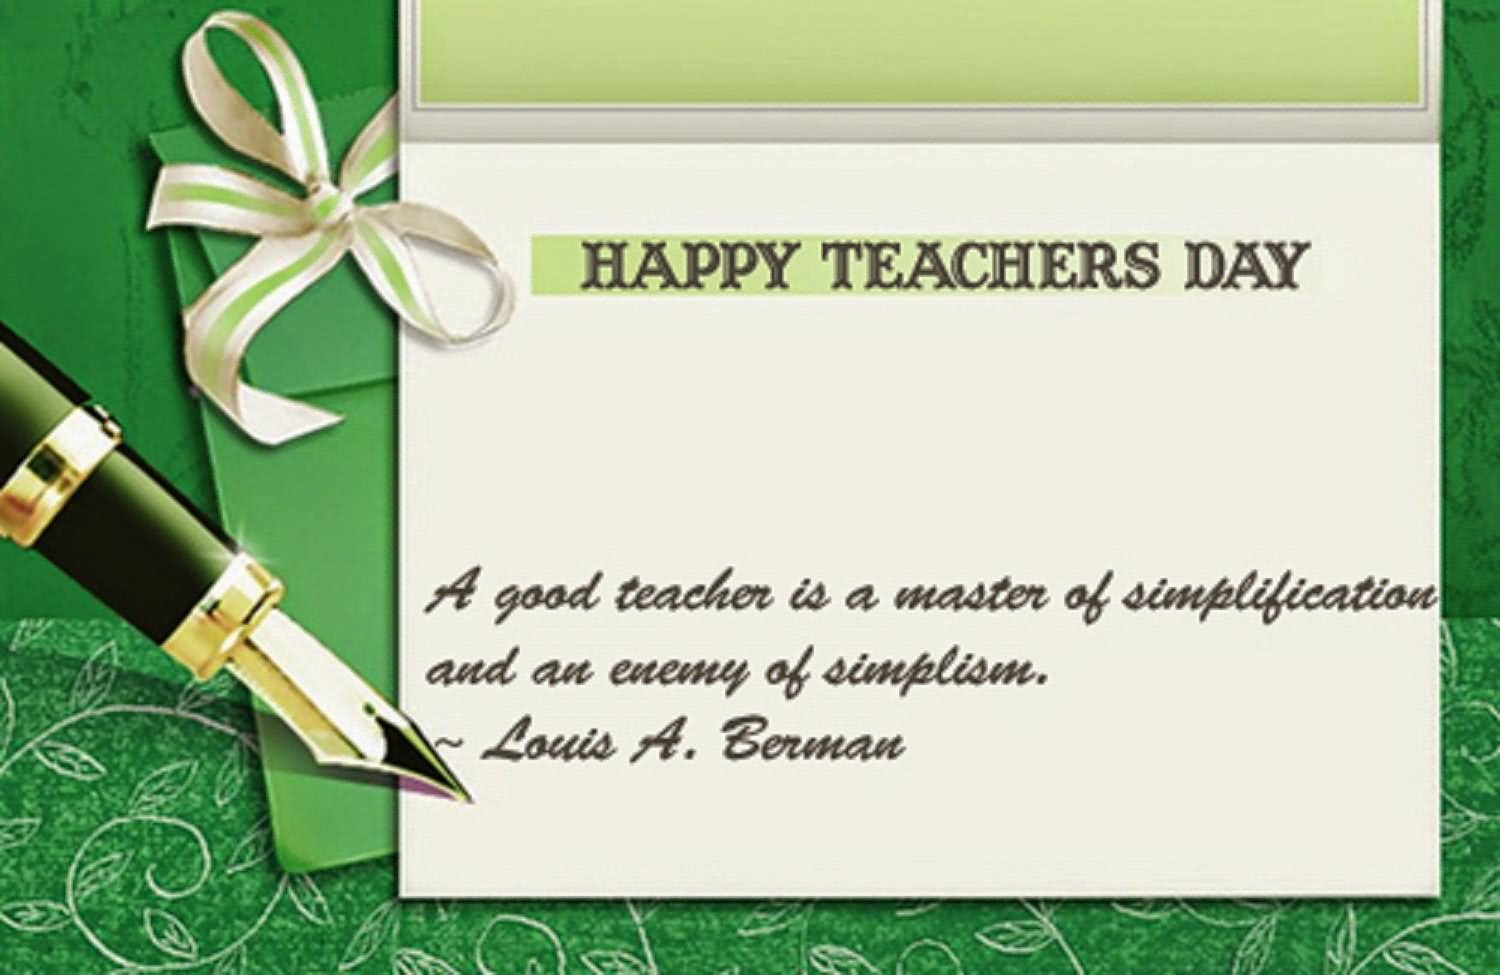 Happy teachers day cardet6gresize618402ssl1 teachers day card how to make a homemade teacher s kristyandbryce Image collections